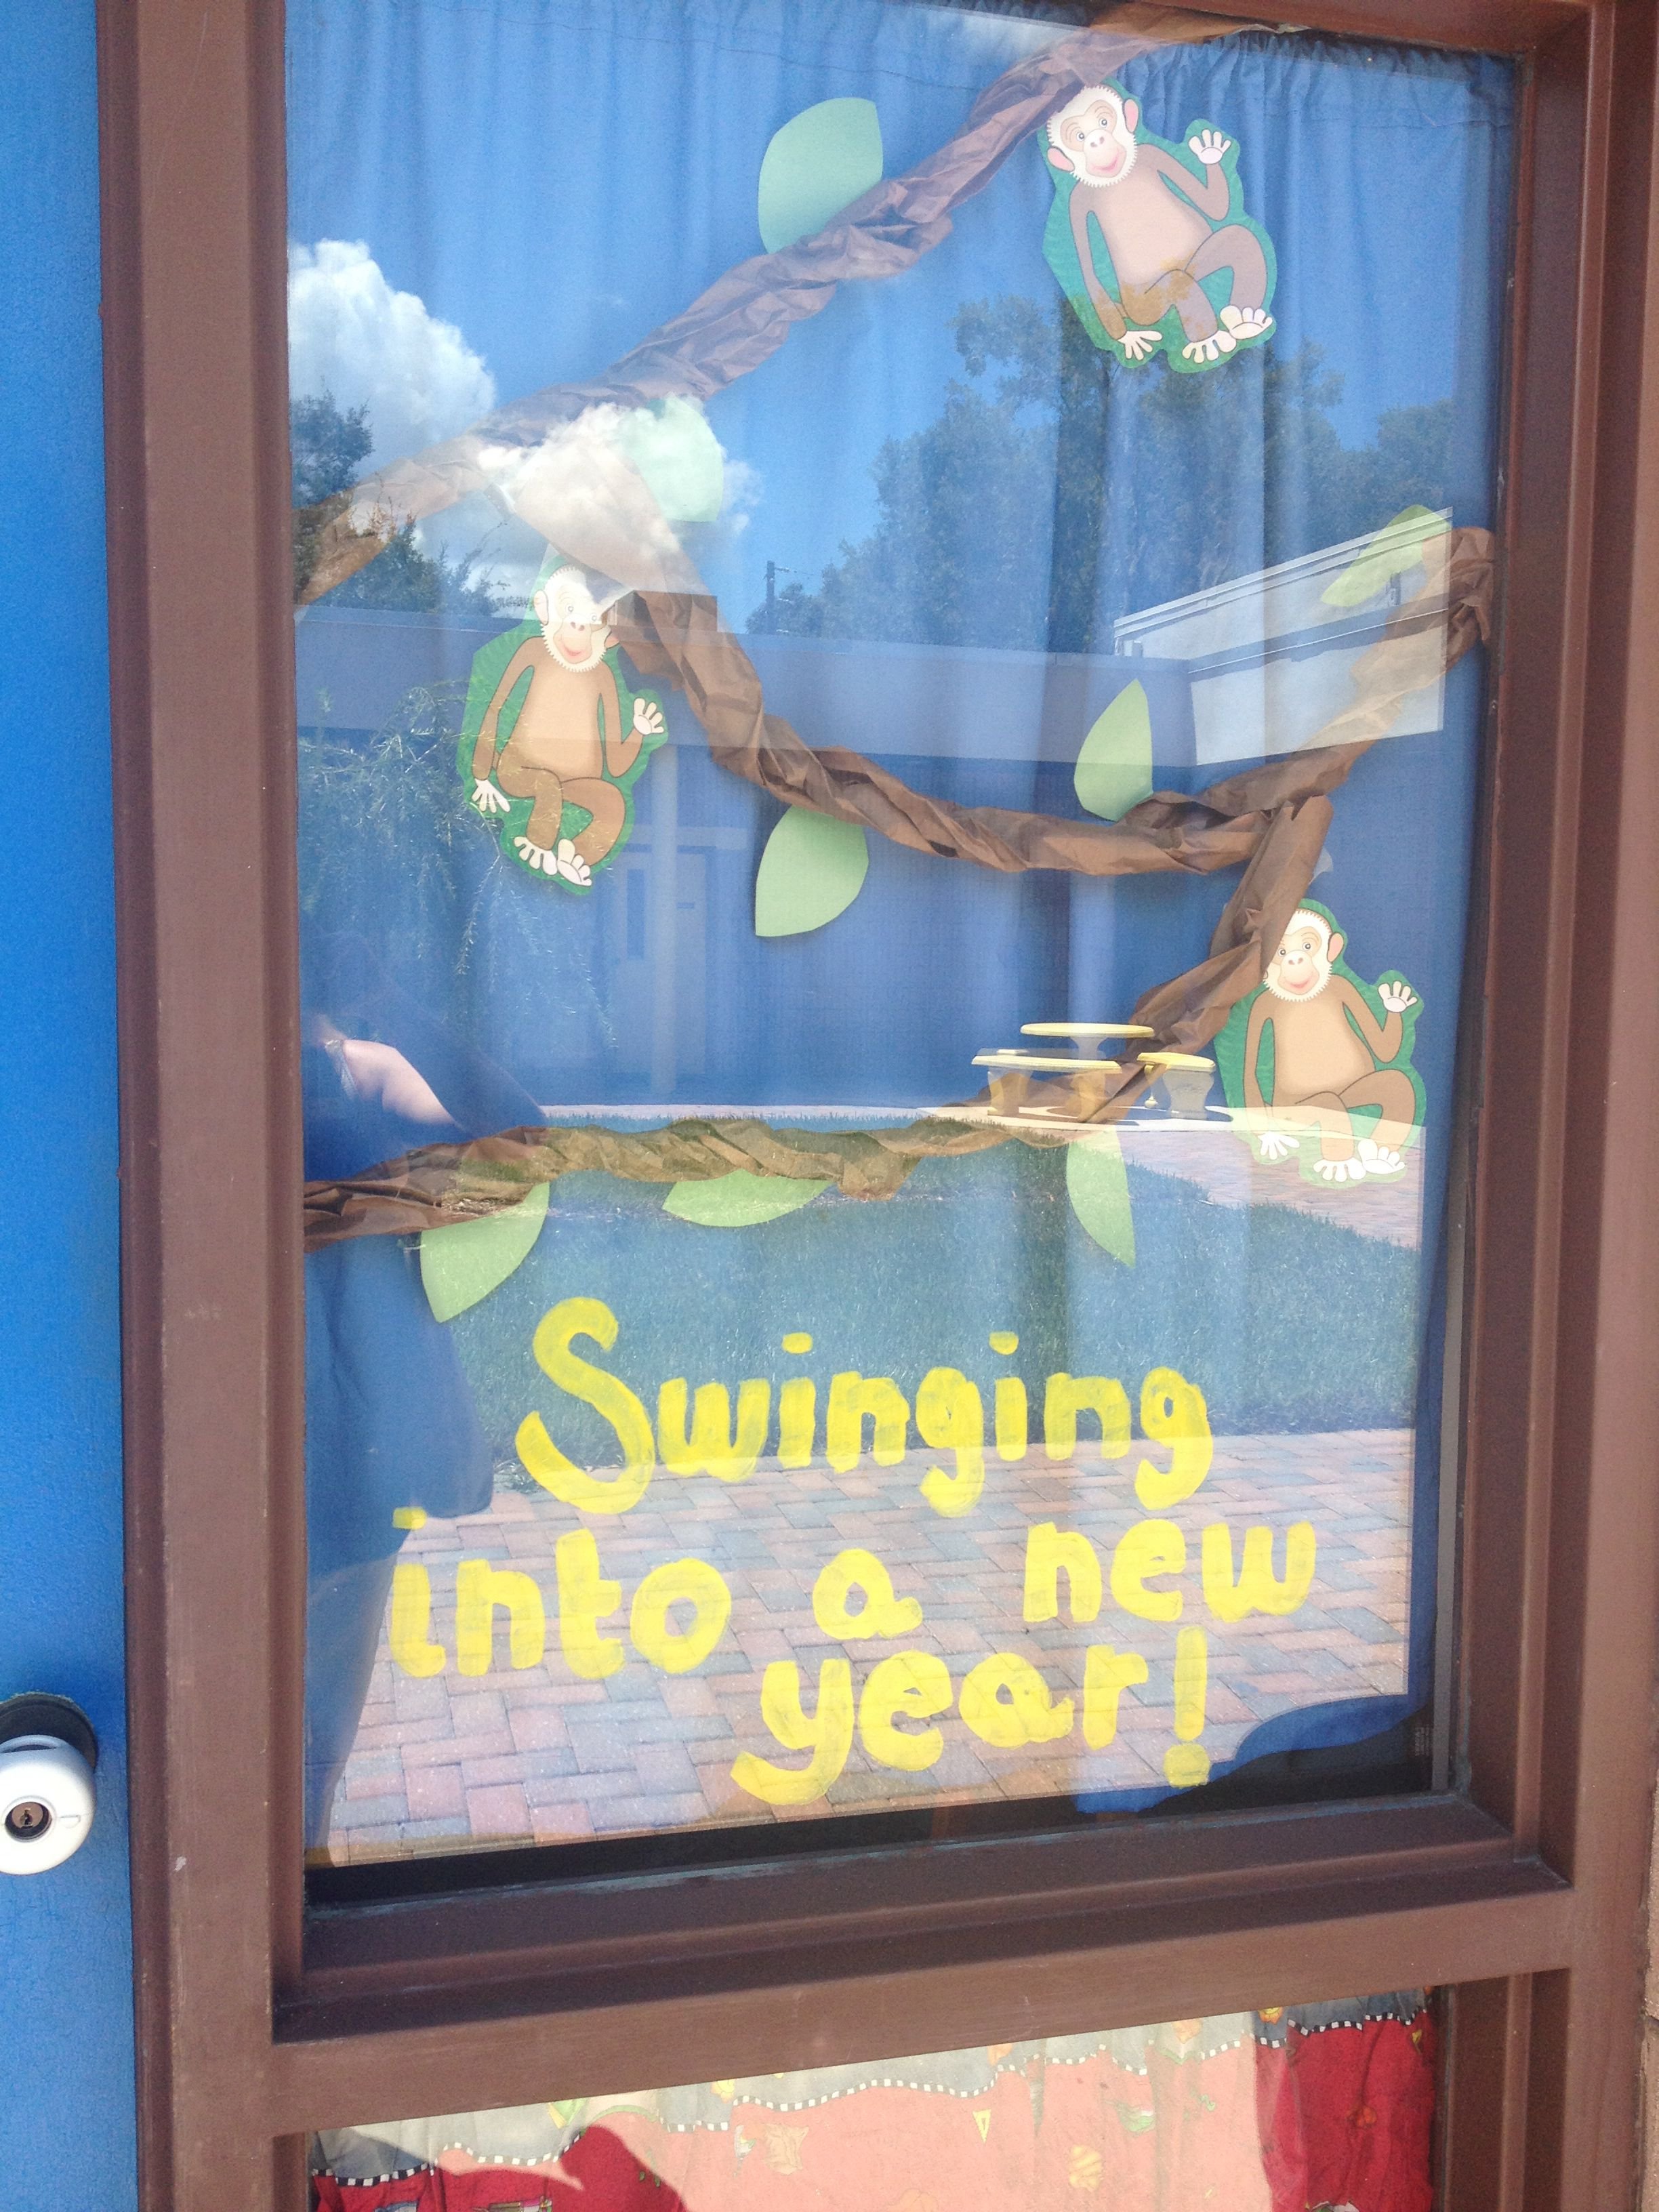 Swinging into a new year. | Newyear, Bulletin boards, Decor